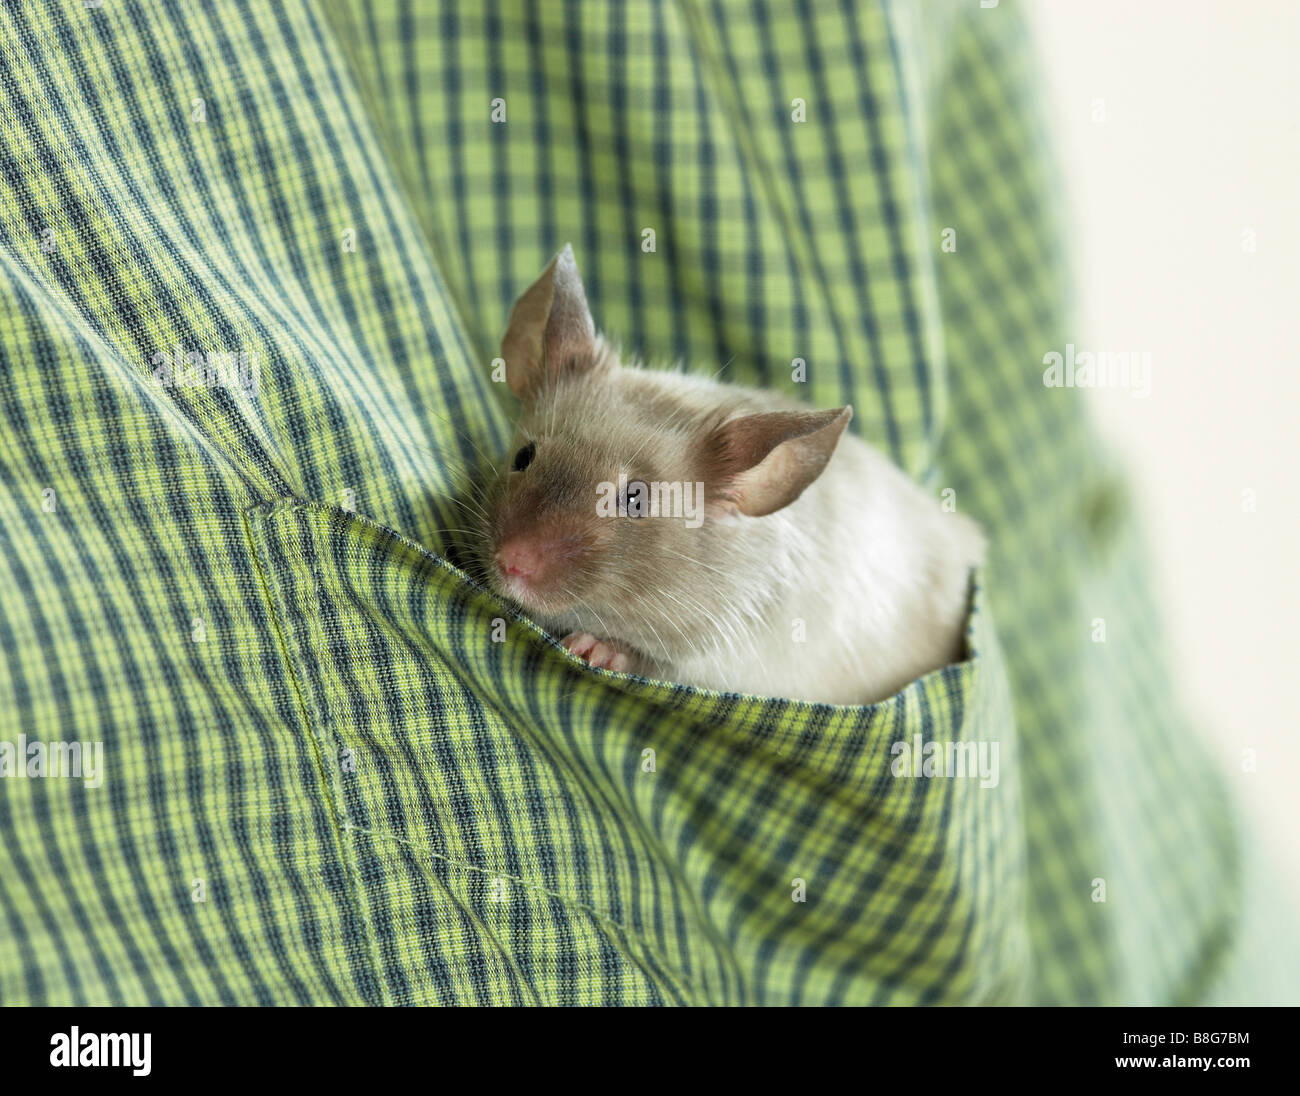 fancy mouse in shirt - Stock Image